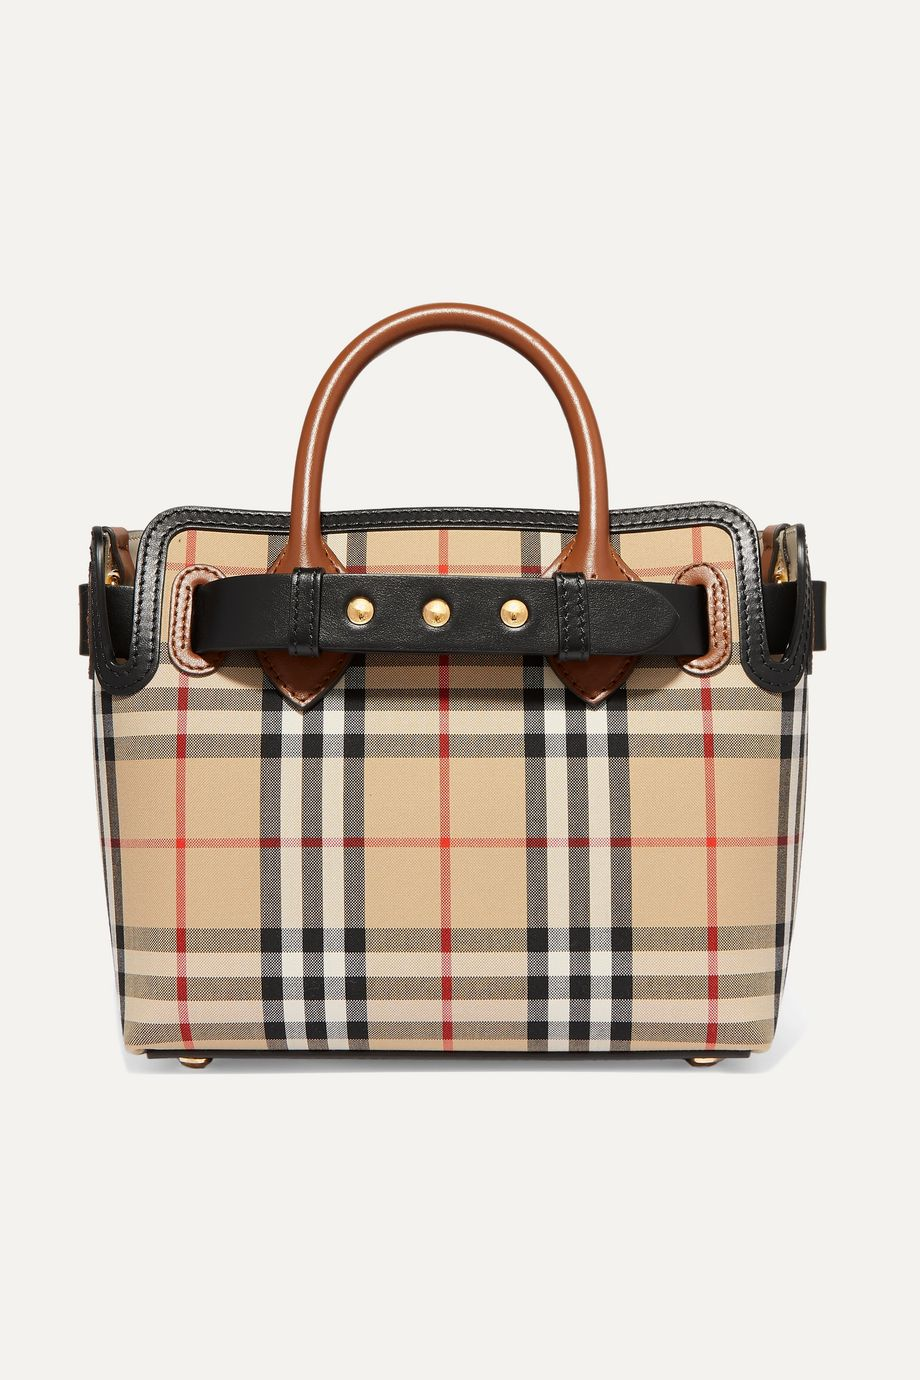 Burberry Leather-trimmed checked coated-canvas tote